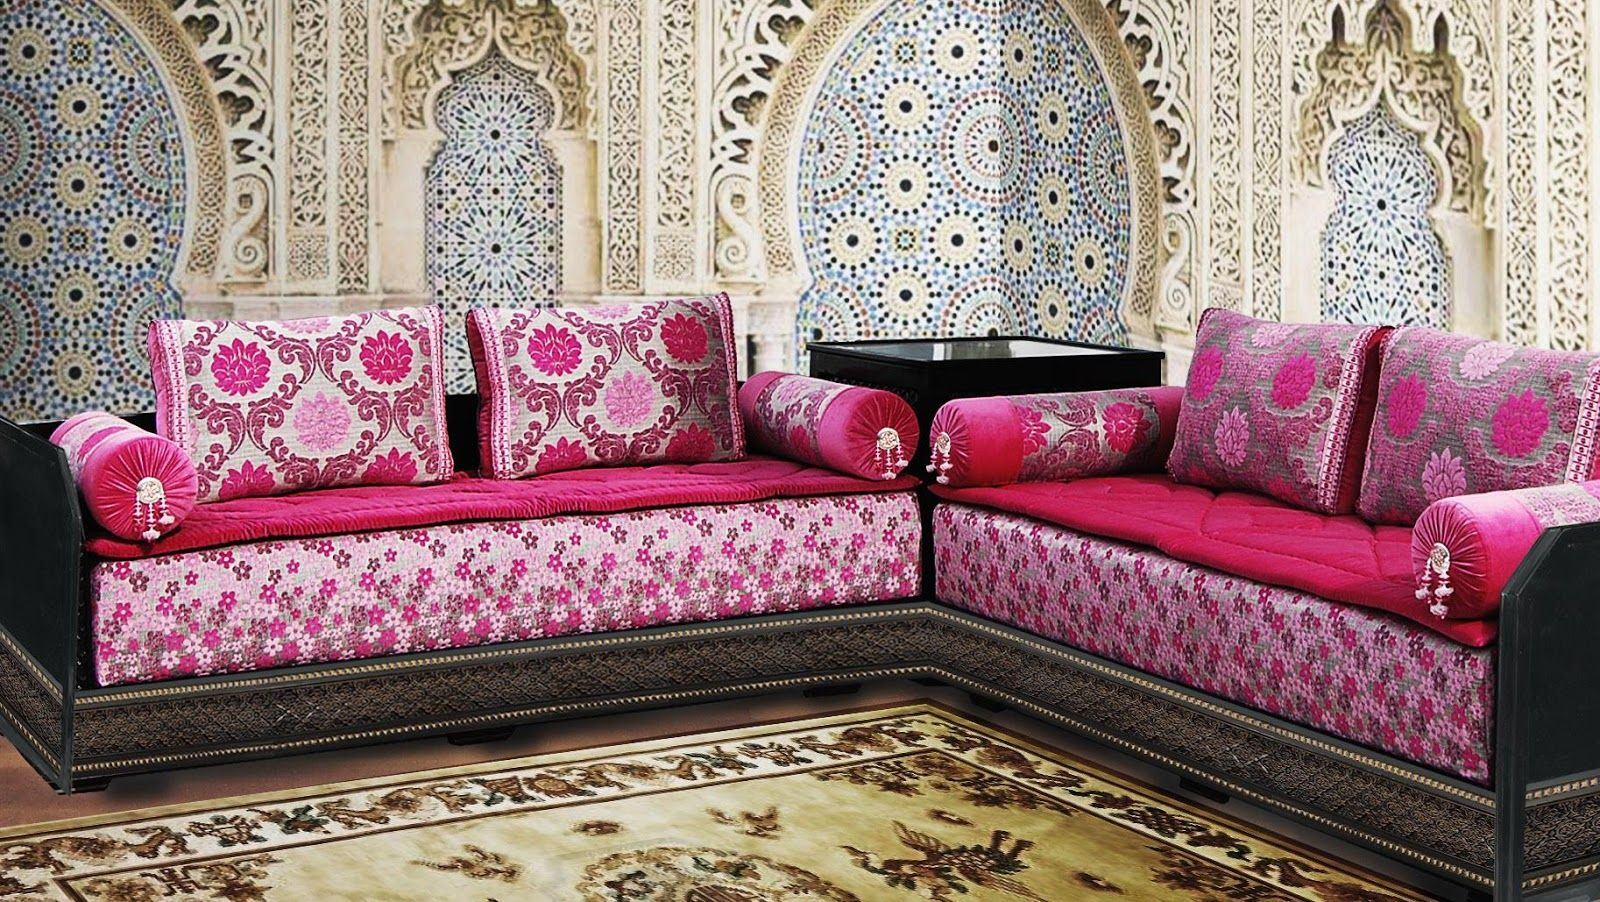 Salon marocain design exceptionnel salon marocain for Decoration coin salon moderne